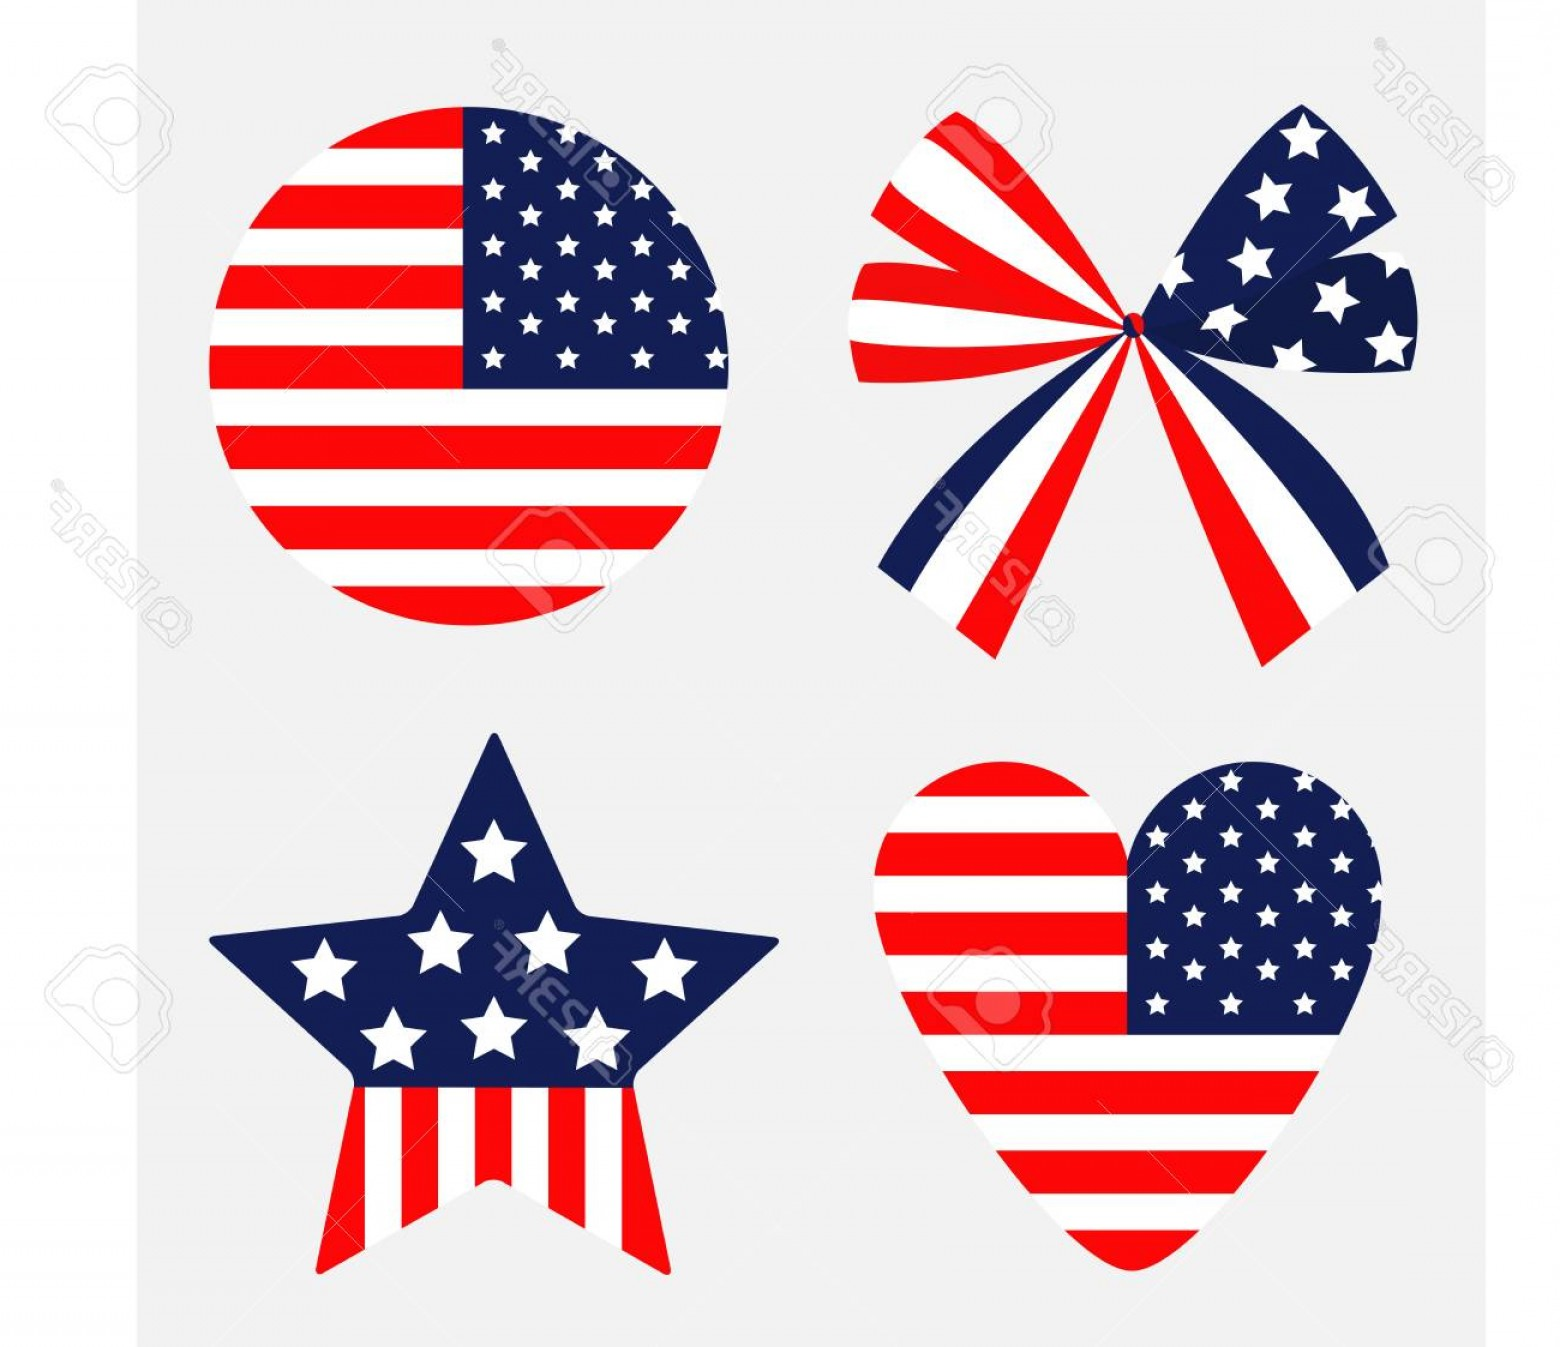 American Flag Stars Only Vector: Photostock Vector Ribbon Bow Shape Round Heart Star American Flag Stars And Strips Icon Isolated Red And Blue Color Wh